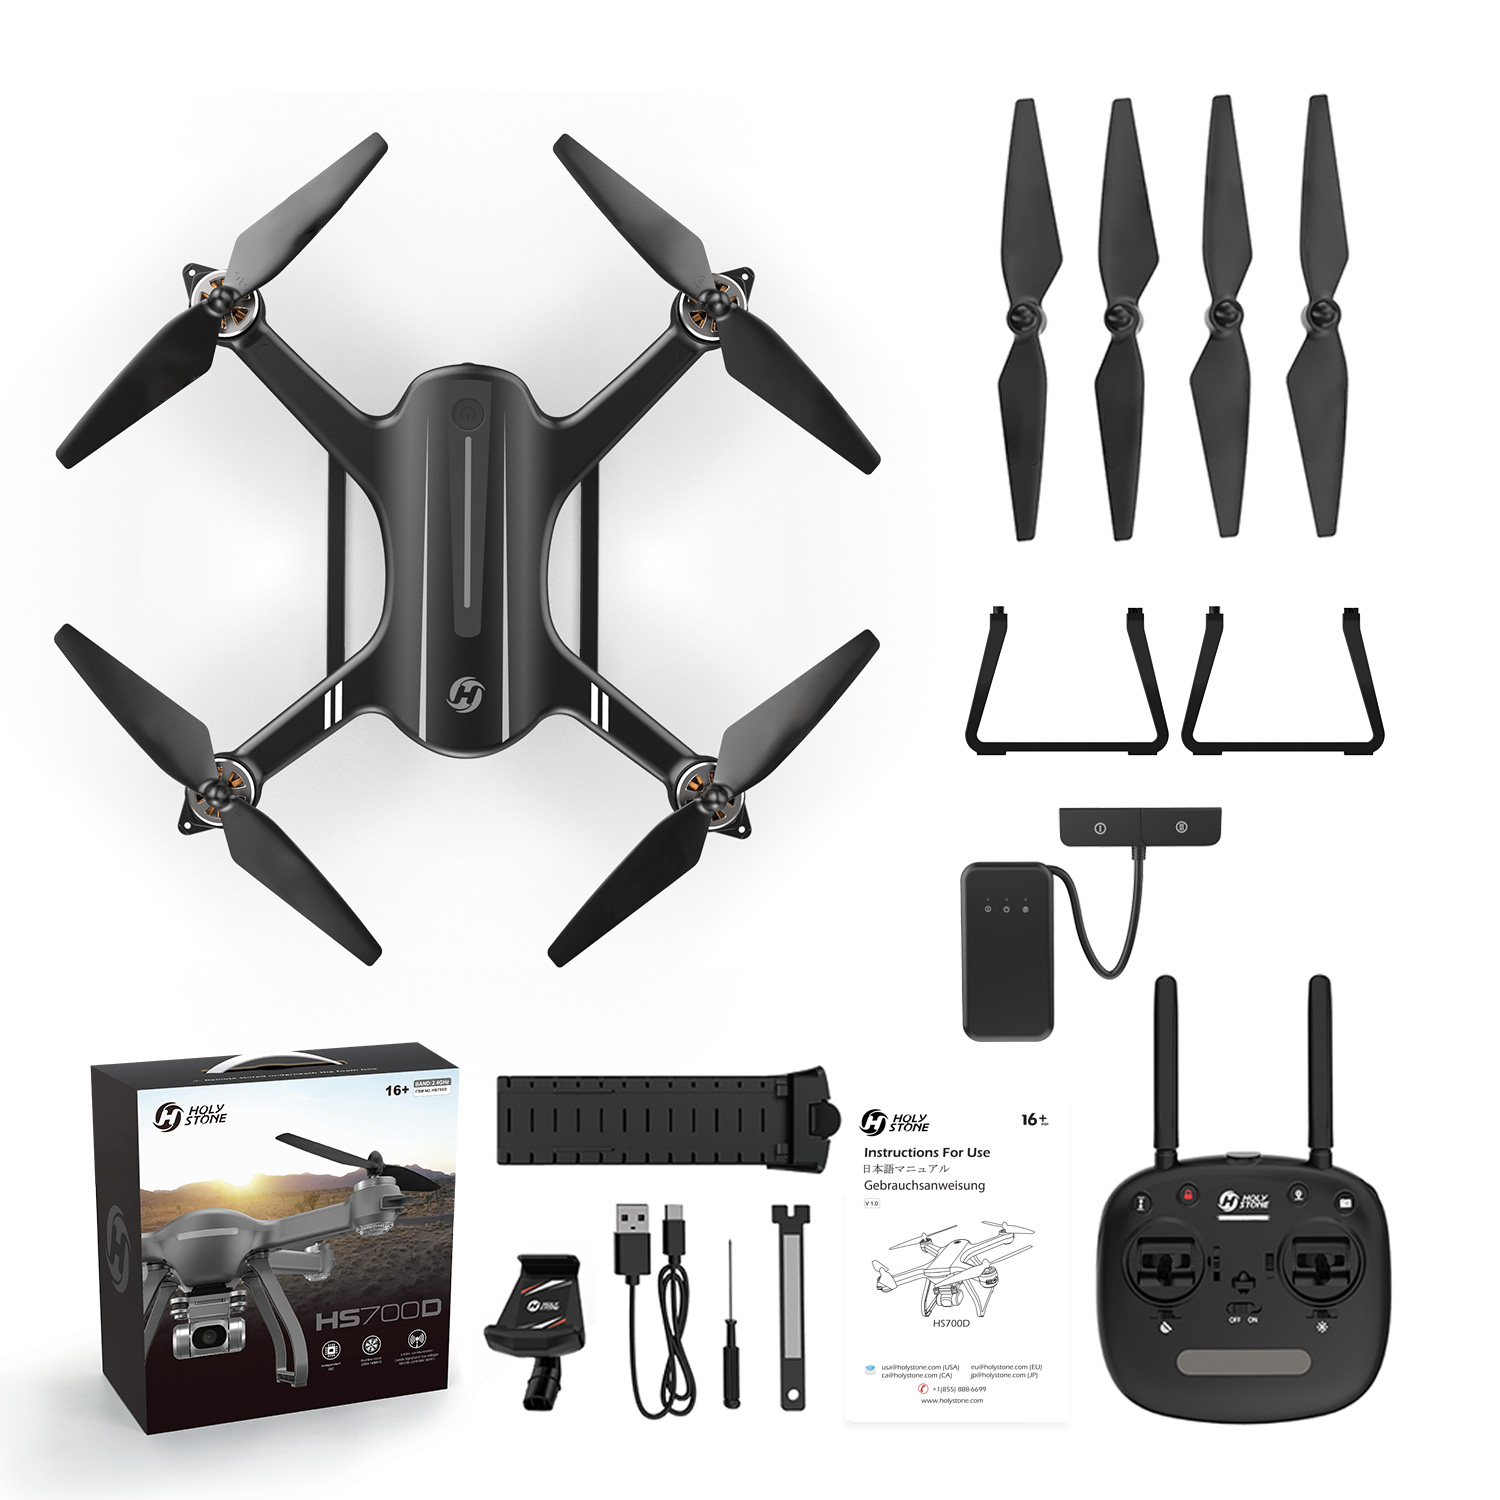 Professional Drone-2K FHD Camera-WI-Fi FPV Live Video-GPS-5GHz  Aerial Photography